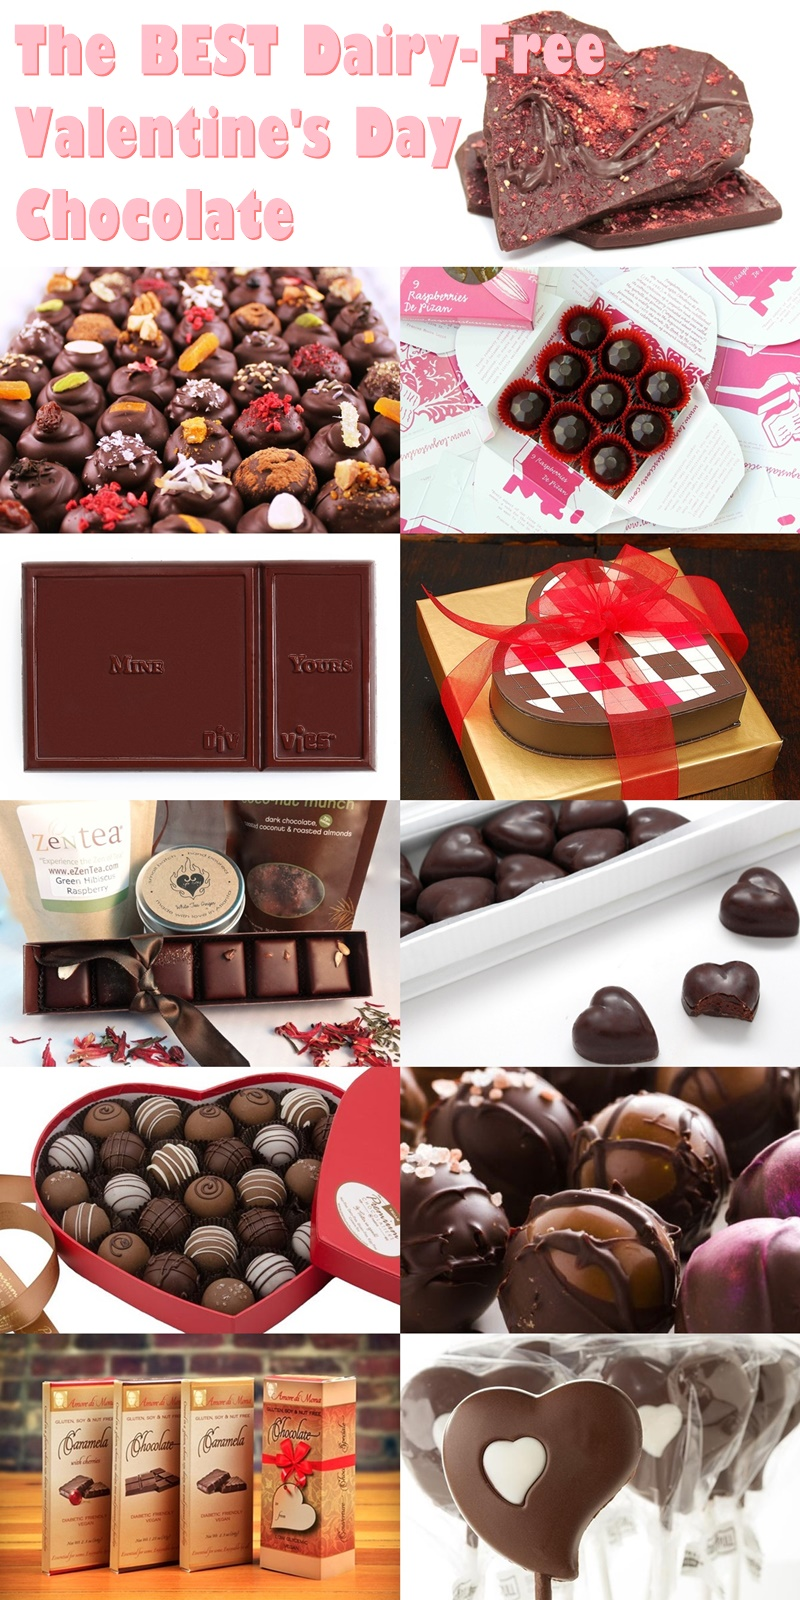 The Guide to the Best Dairy-Free Valentine Chocolate: Over 20 Chocolatiers with Vegan, Gluten-Free, Food Allergy-Friendly, Organic, Fair Trade and more!